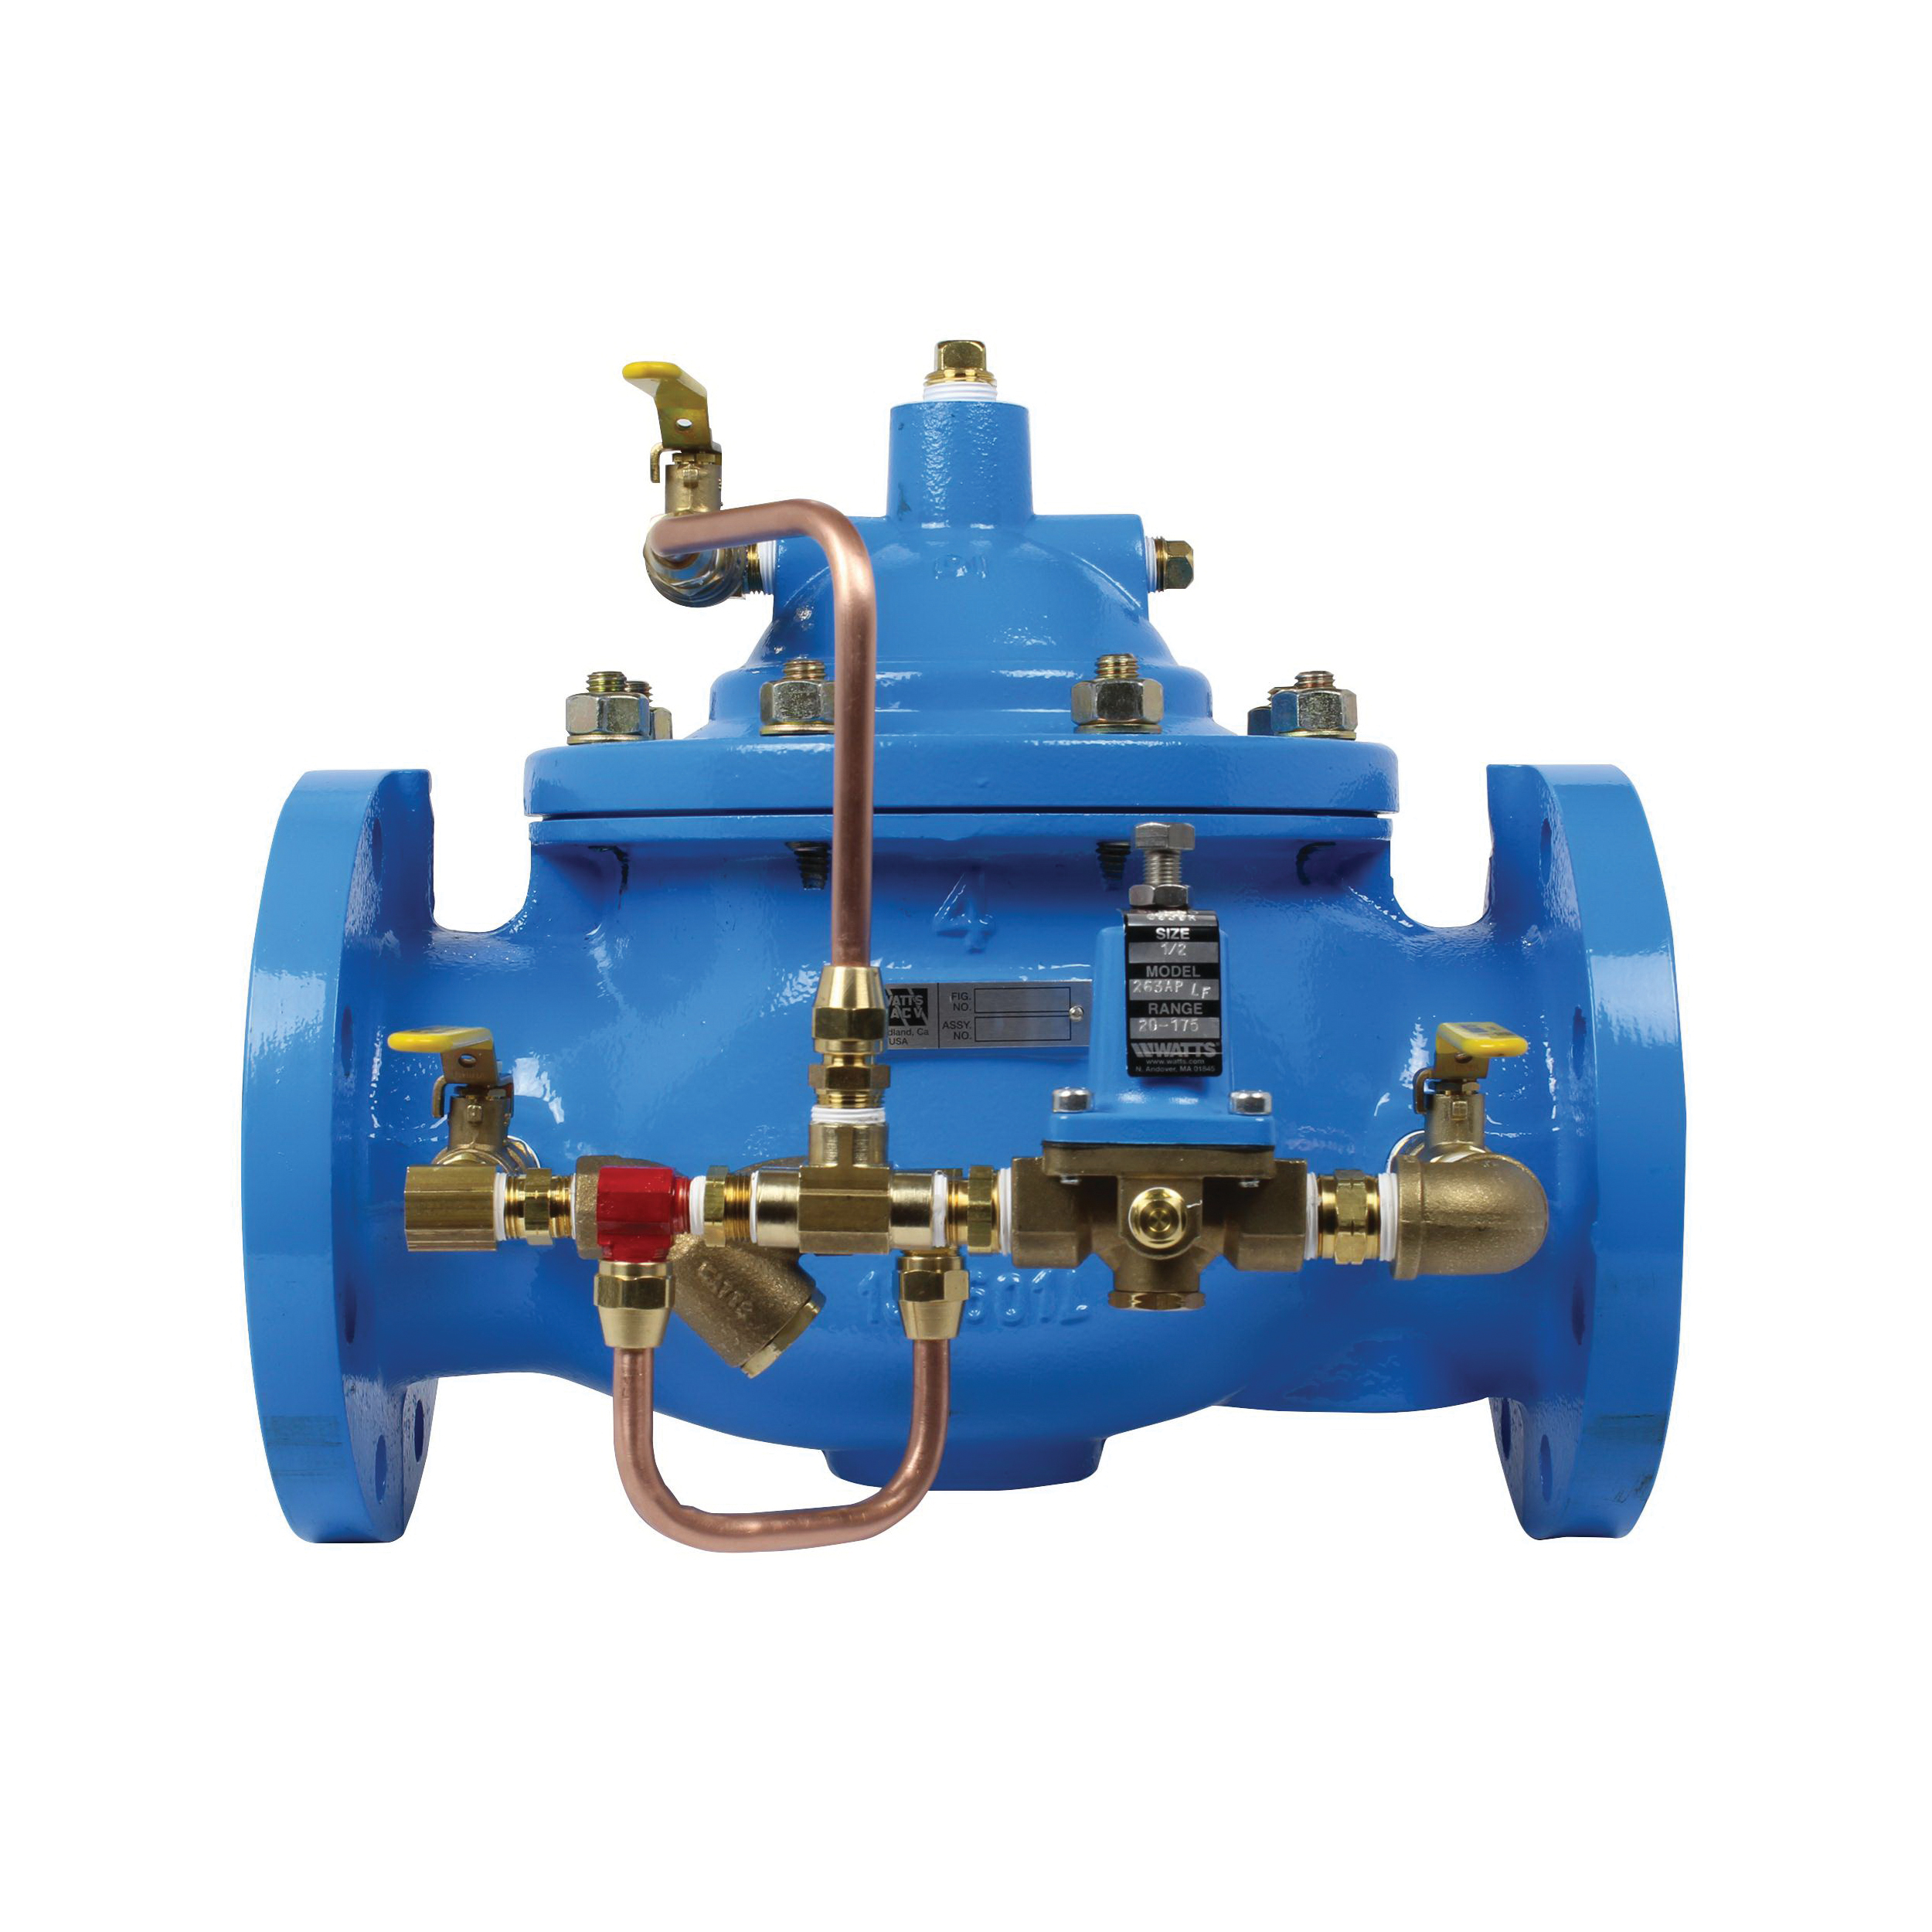 WATTS® VT200503 LFF115 Pressure Reducing Globe Valve, 2 in, Flange, 250 psi, 1 to 210 gpm, Ductile Iron Body